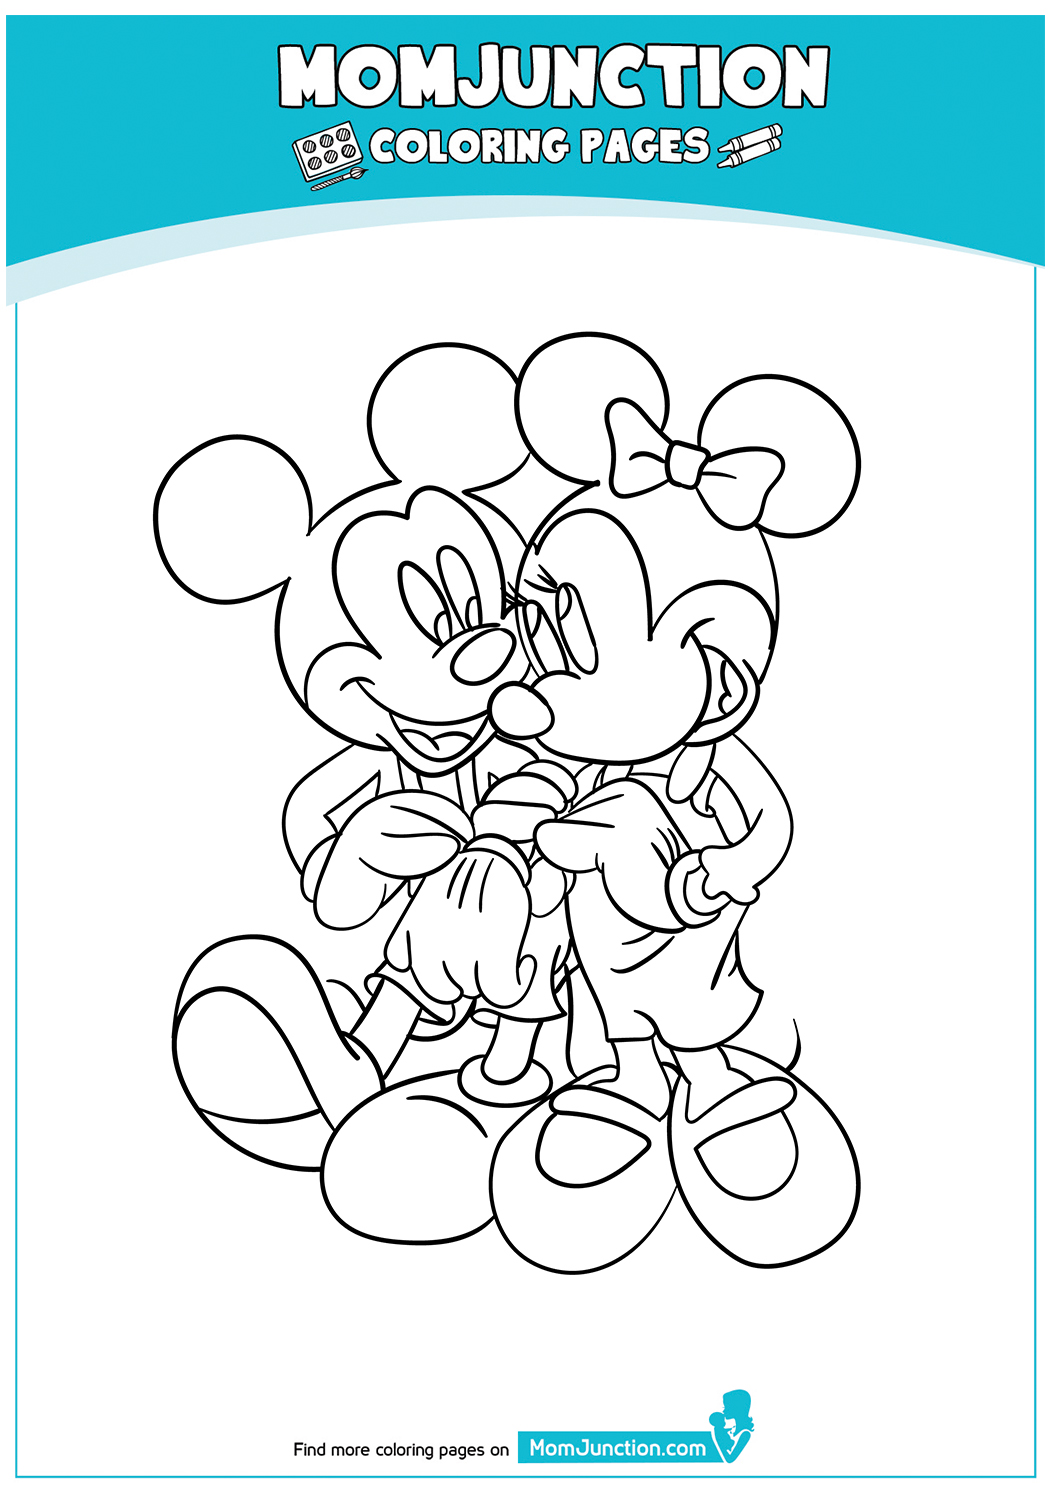 Mickey-and-Minnie-in-Romance-17